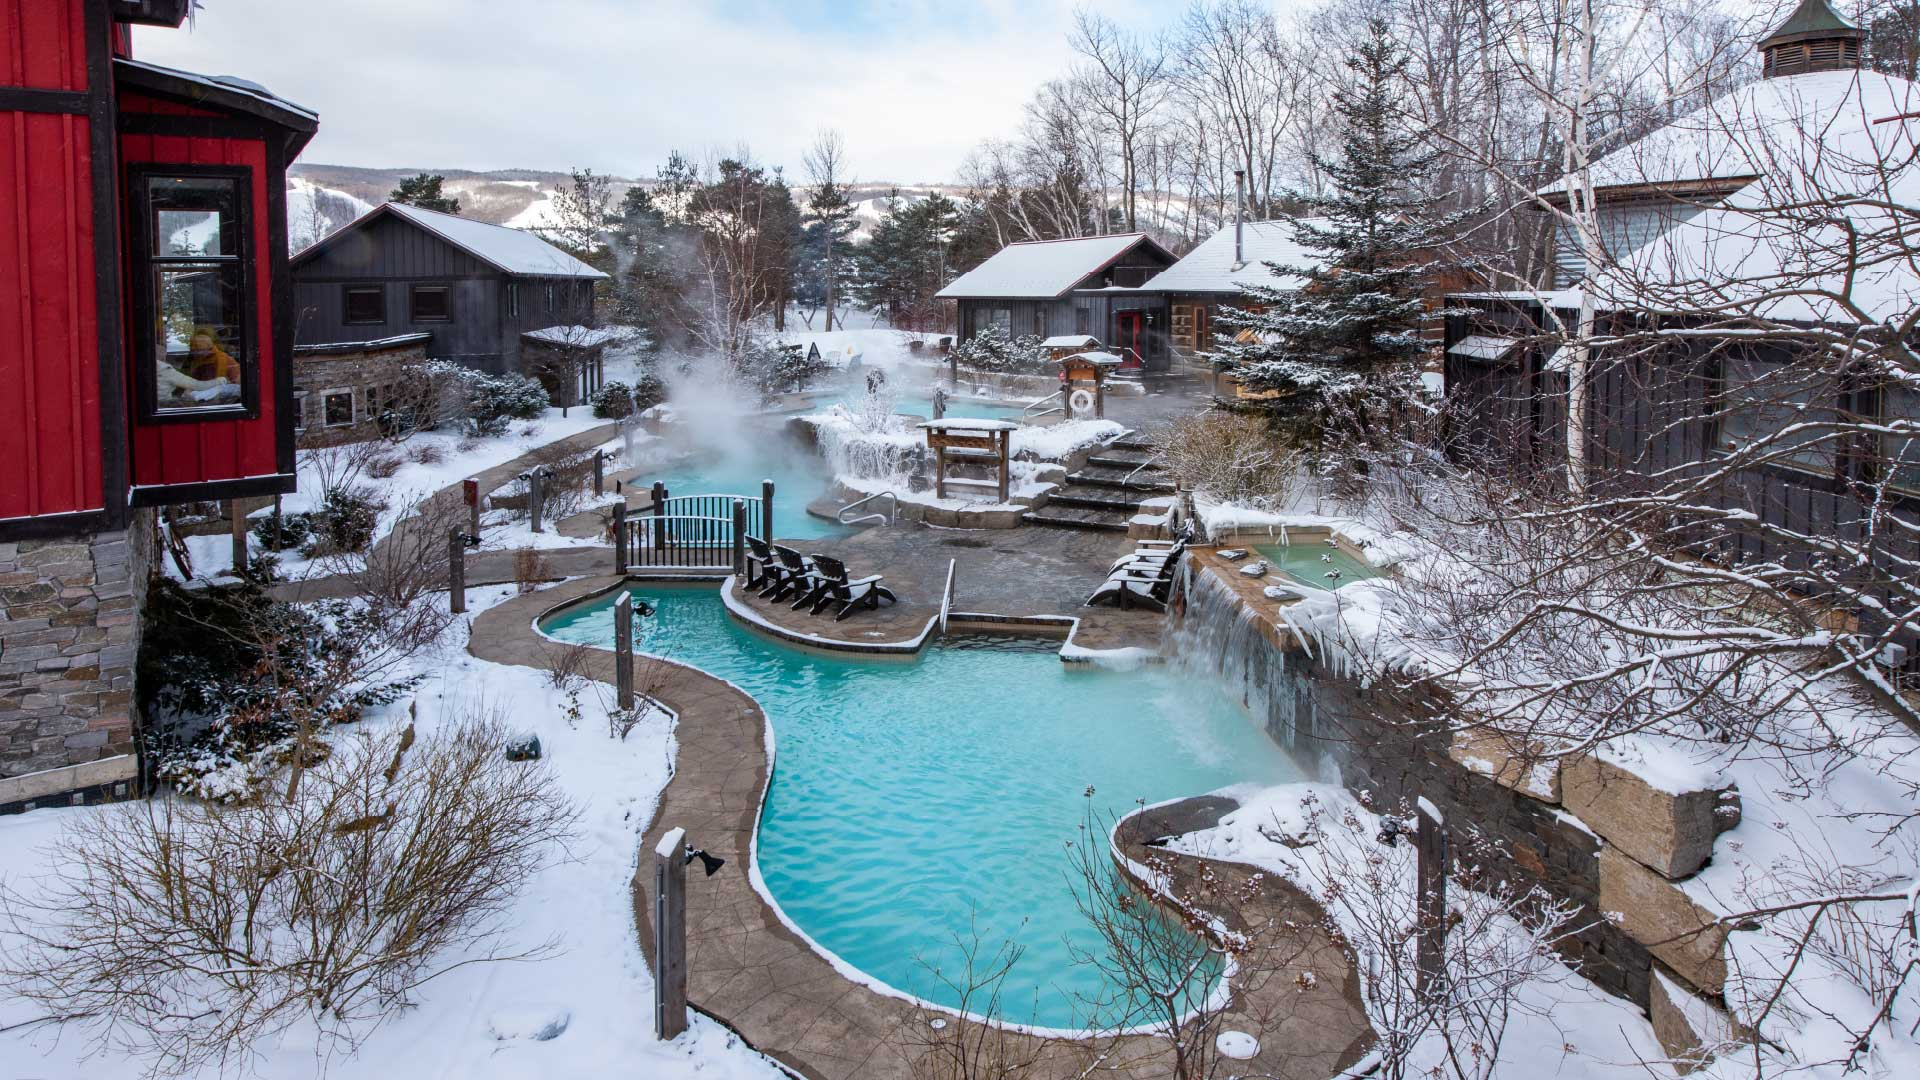 Winter at the Scandinave Spa overlooking the Outdoor Baths area.